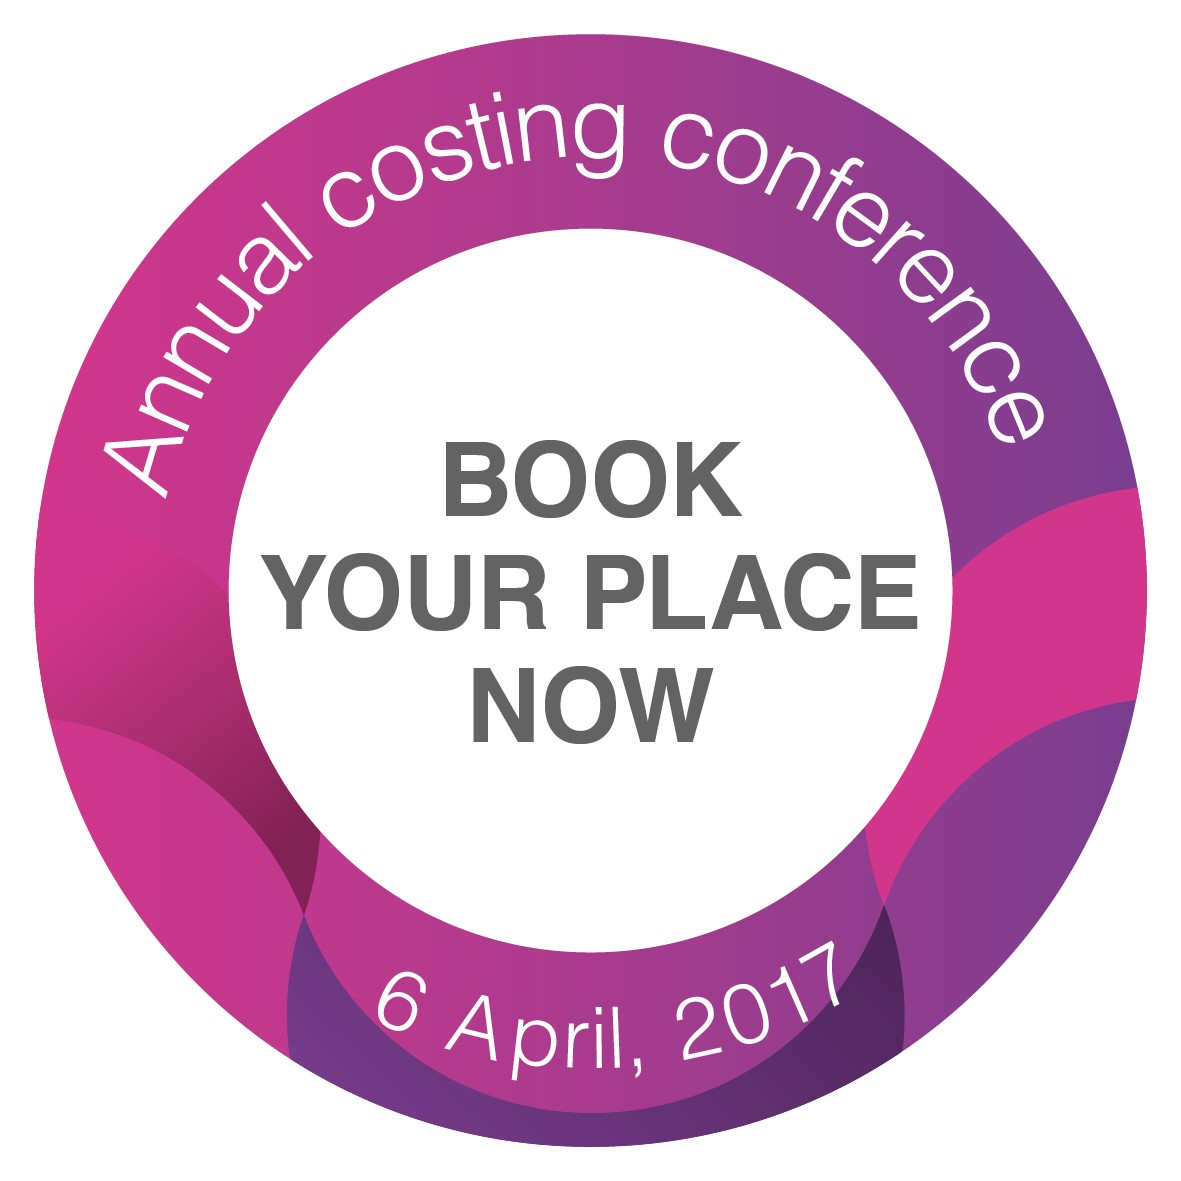 Annual costing conference